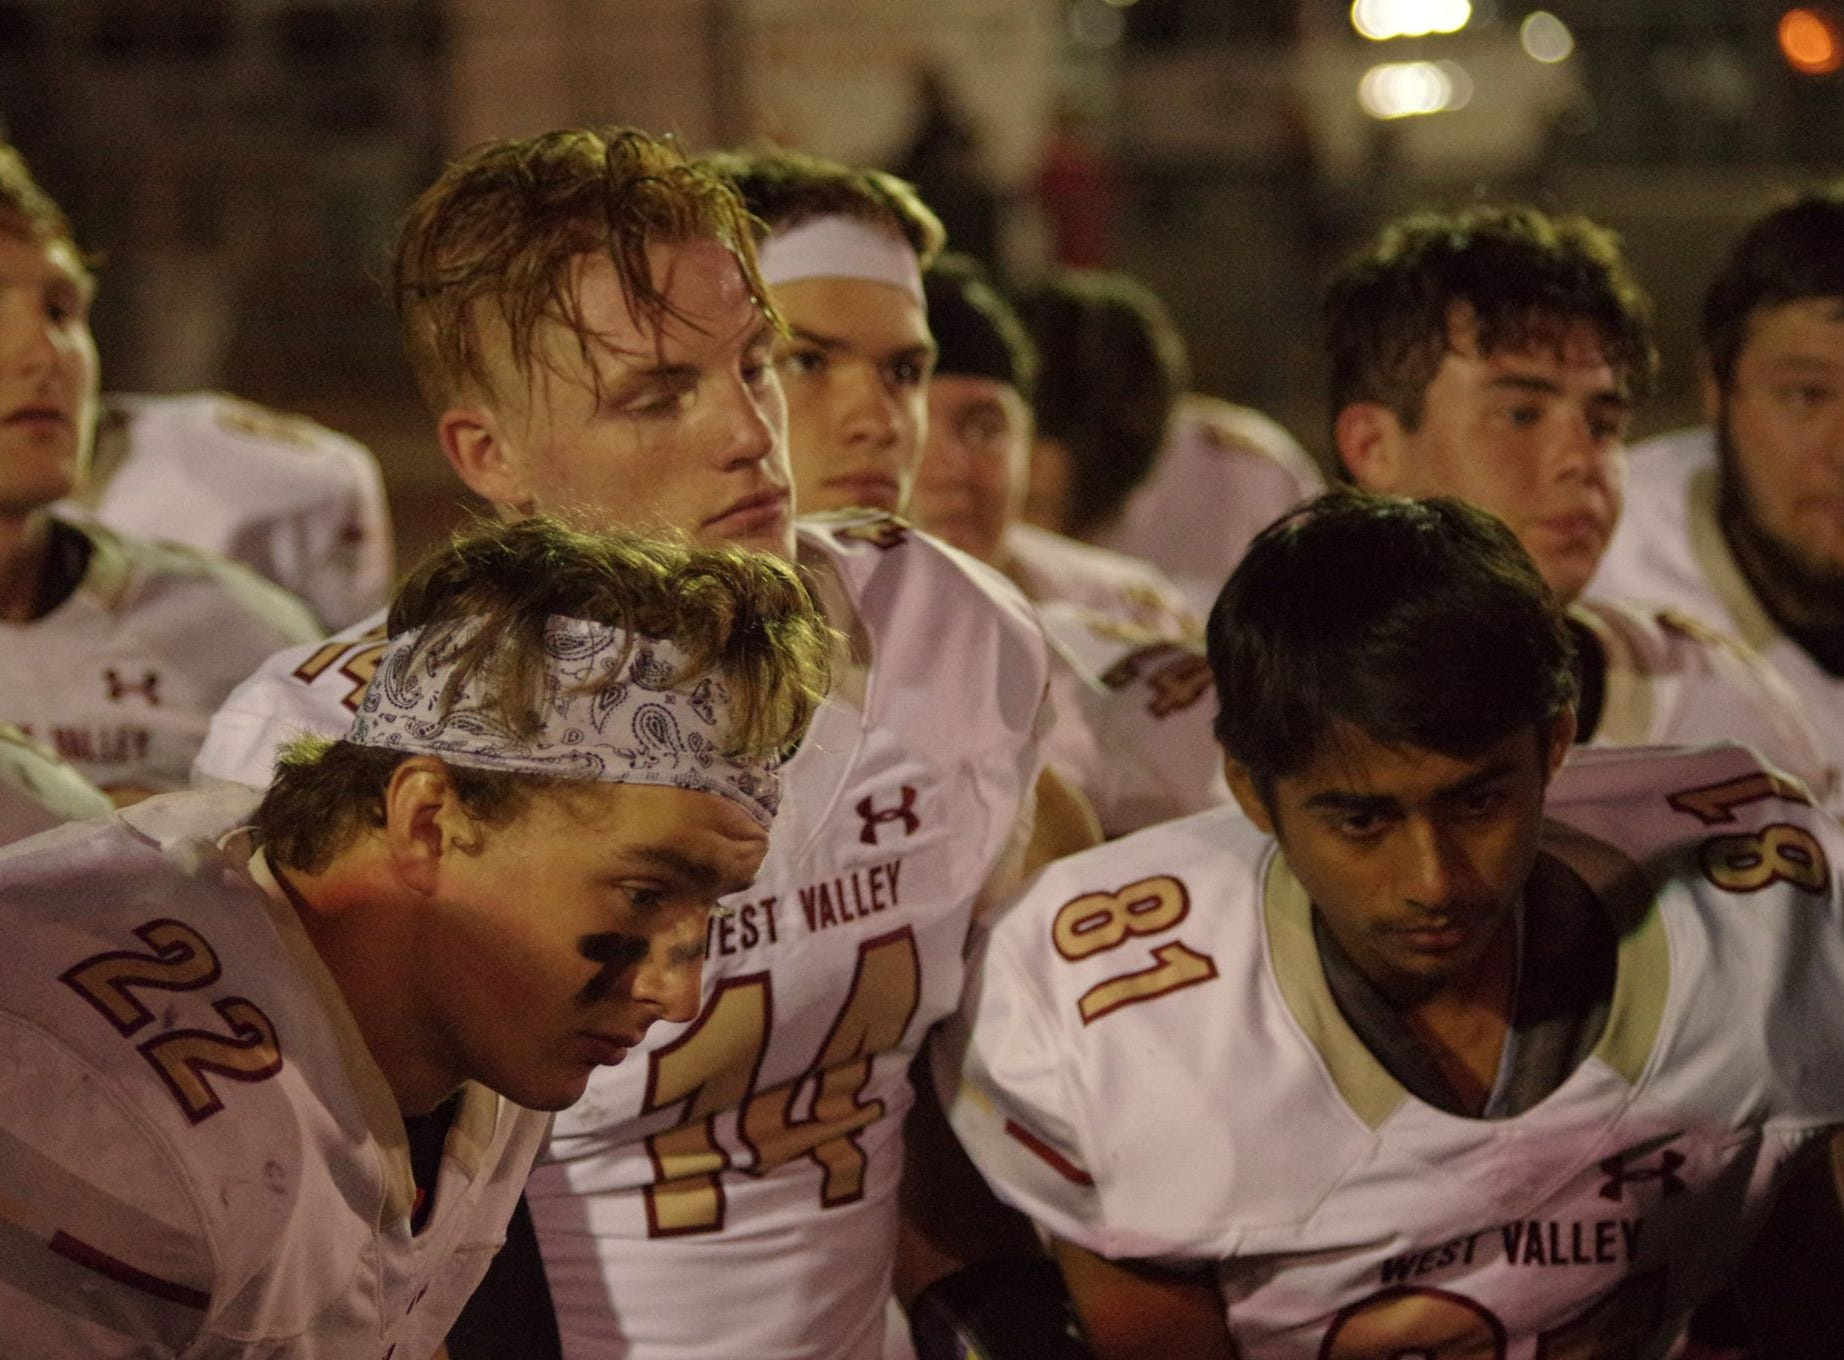 The West Valley football team paid tribute to Tyson Wacker on Friday, Oct. 19, before their game against Corning. Wacker, a junior defensive end, was injured in a vehicle crash on Oct. 18  died as a result of his injuries the following Monday.